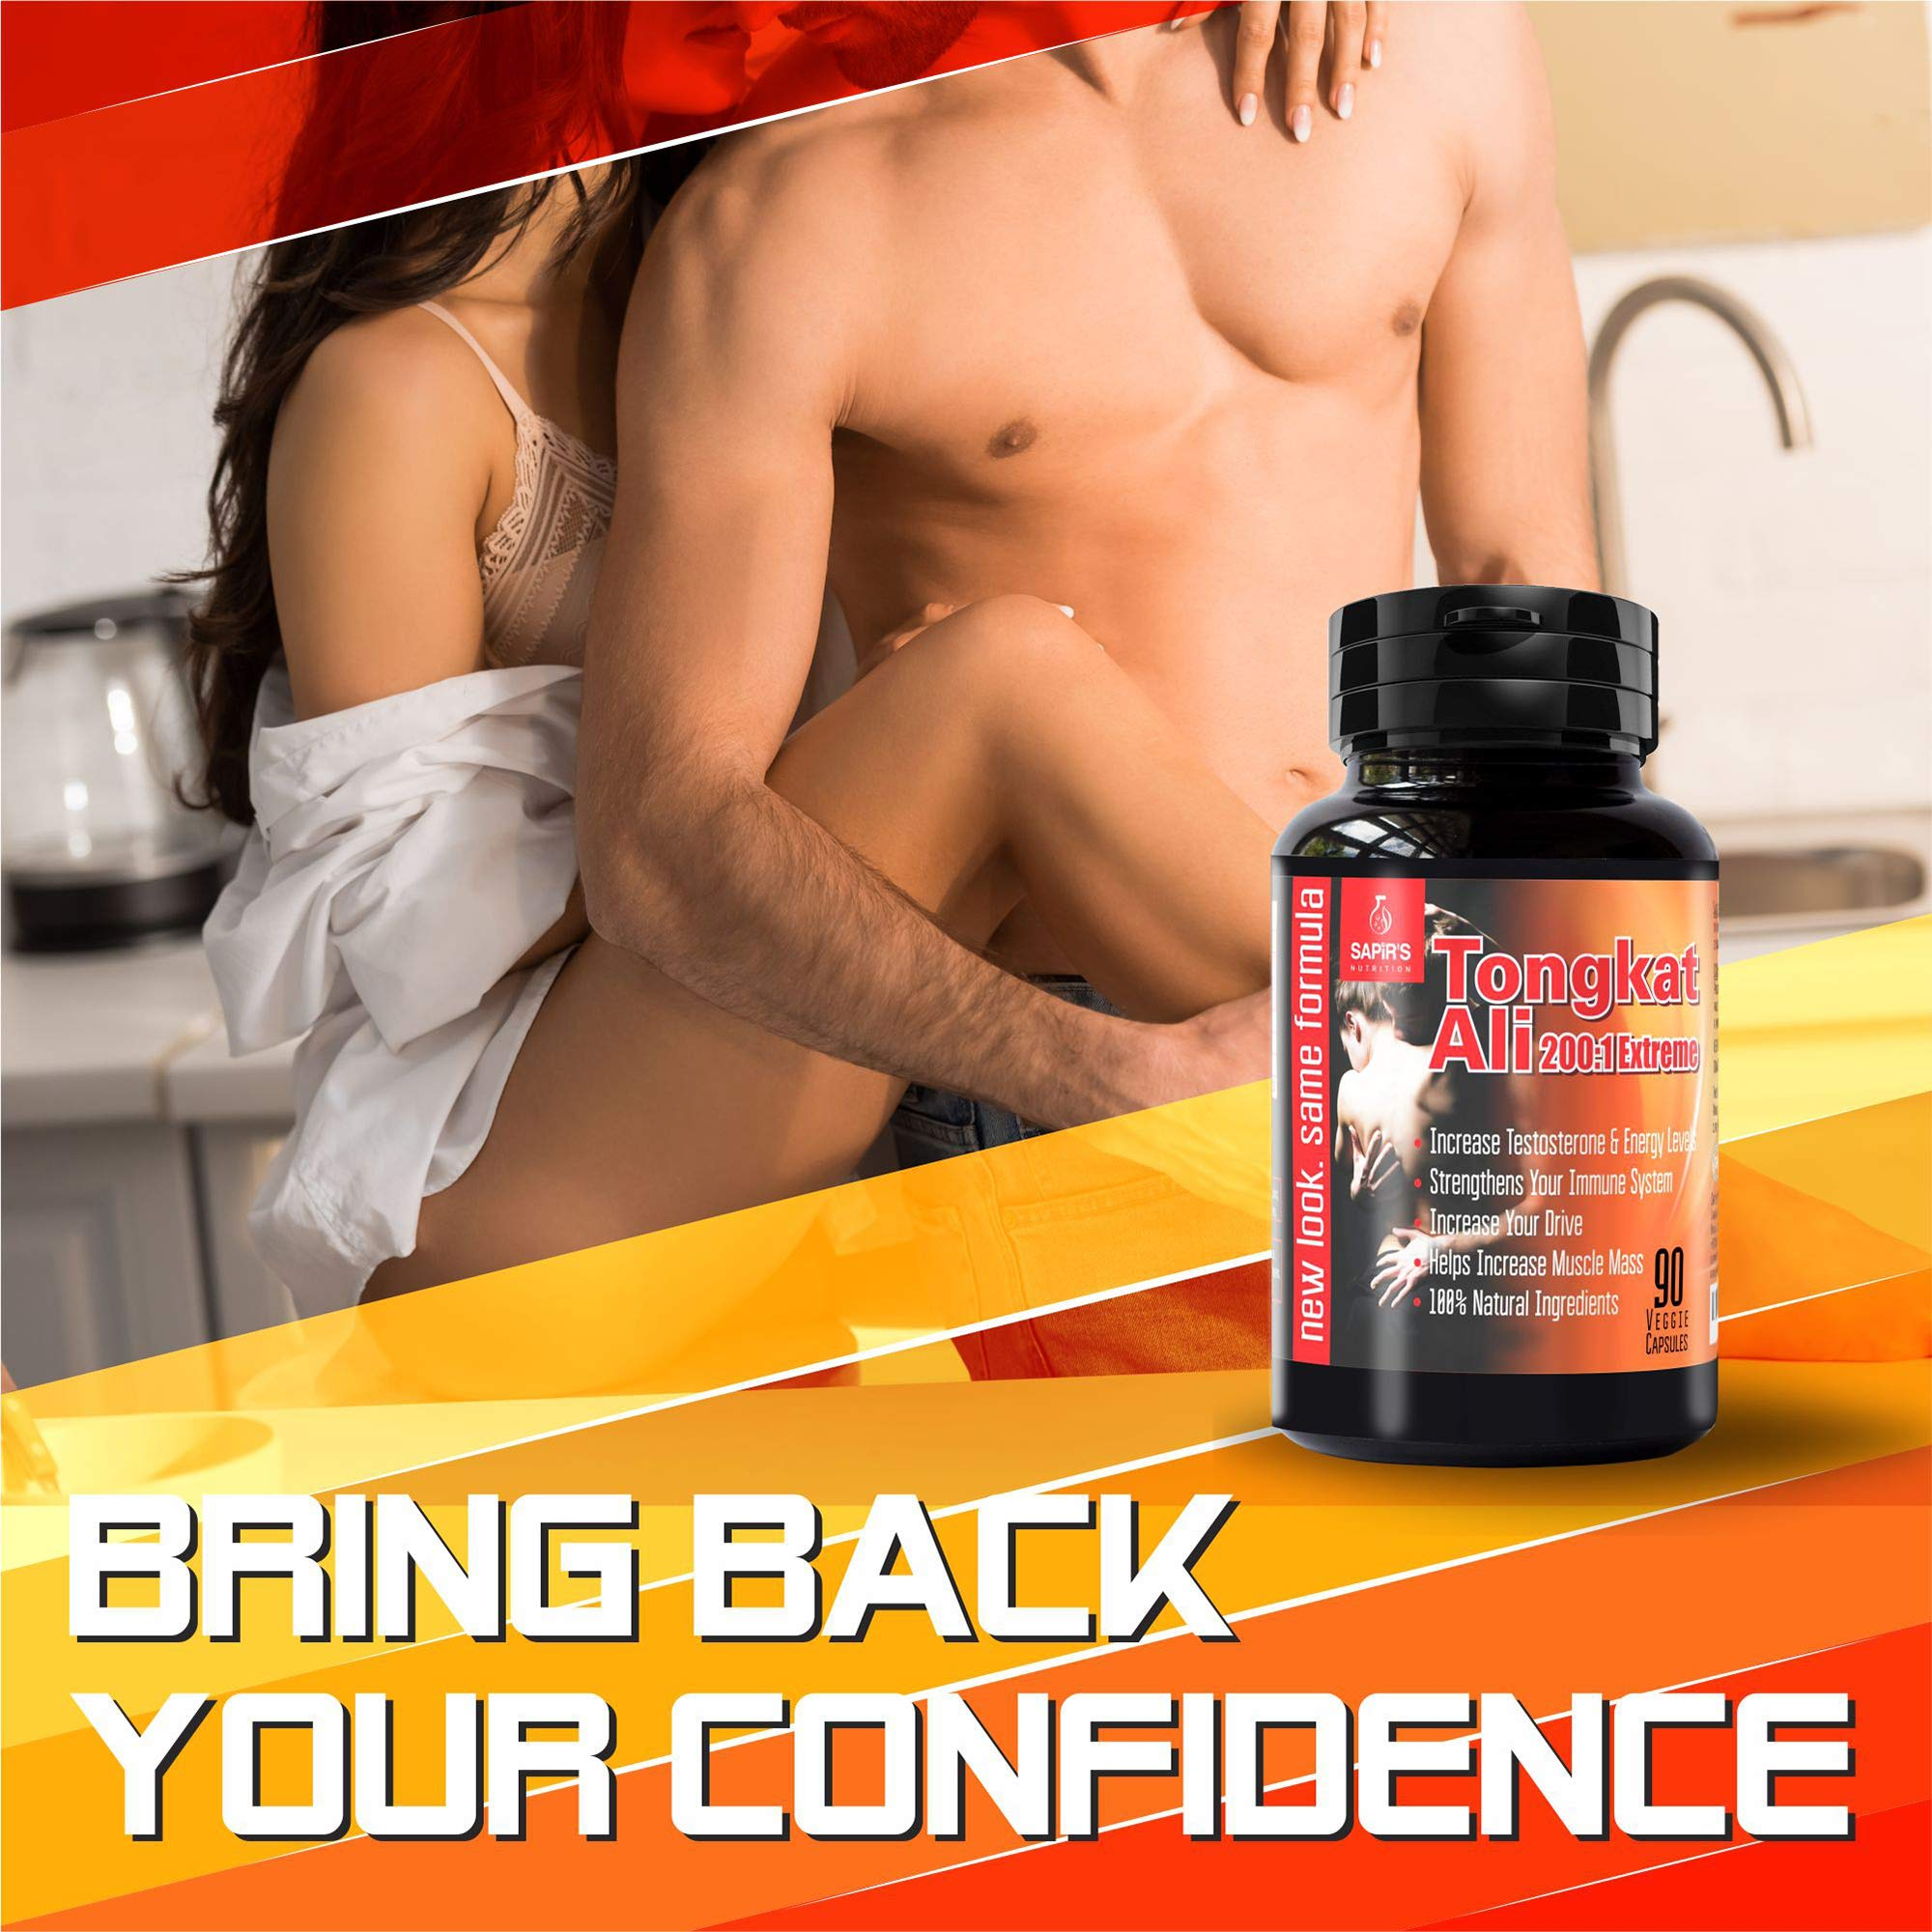 Longjack Tongkat Ali Extract 200 to 1 - Natural Testosterone Booster for Men, Libido Booster for Men, 3000mg Daily 90 Tongkat Ali Capsules, Increase Stamina, Energy, Muscle Growth, Blood Flow